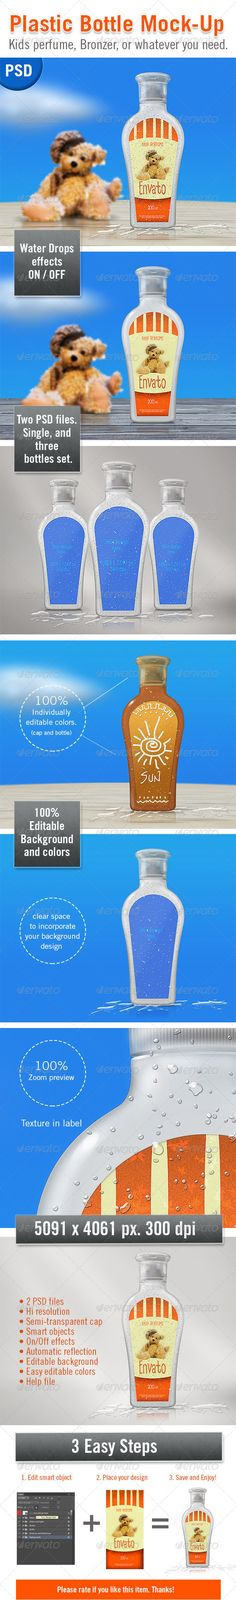 Description: A realistic plastic bottle Mock-Up in 2 PSD files. Fully editable and can change backgrounds and colors. Ideal for p